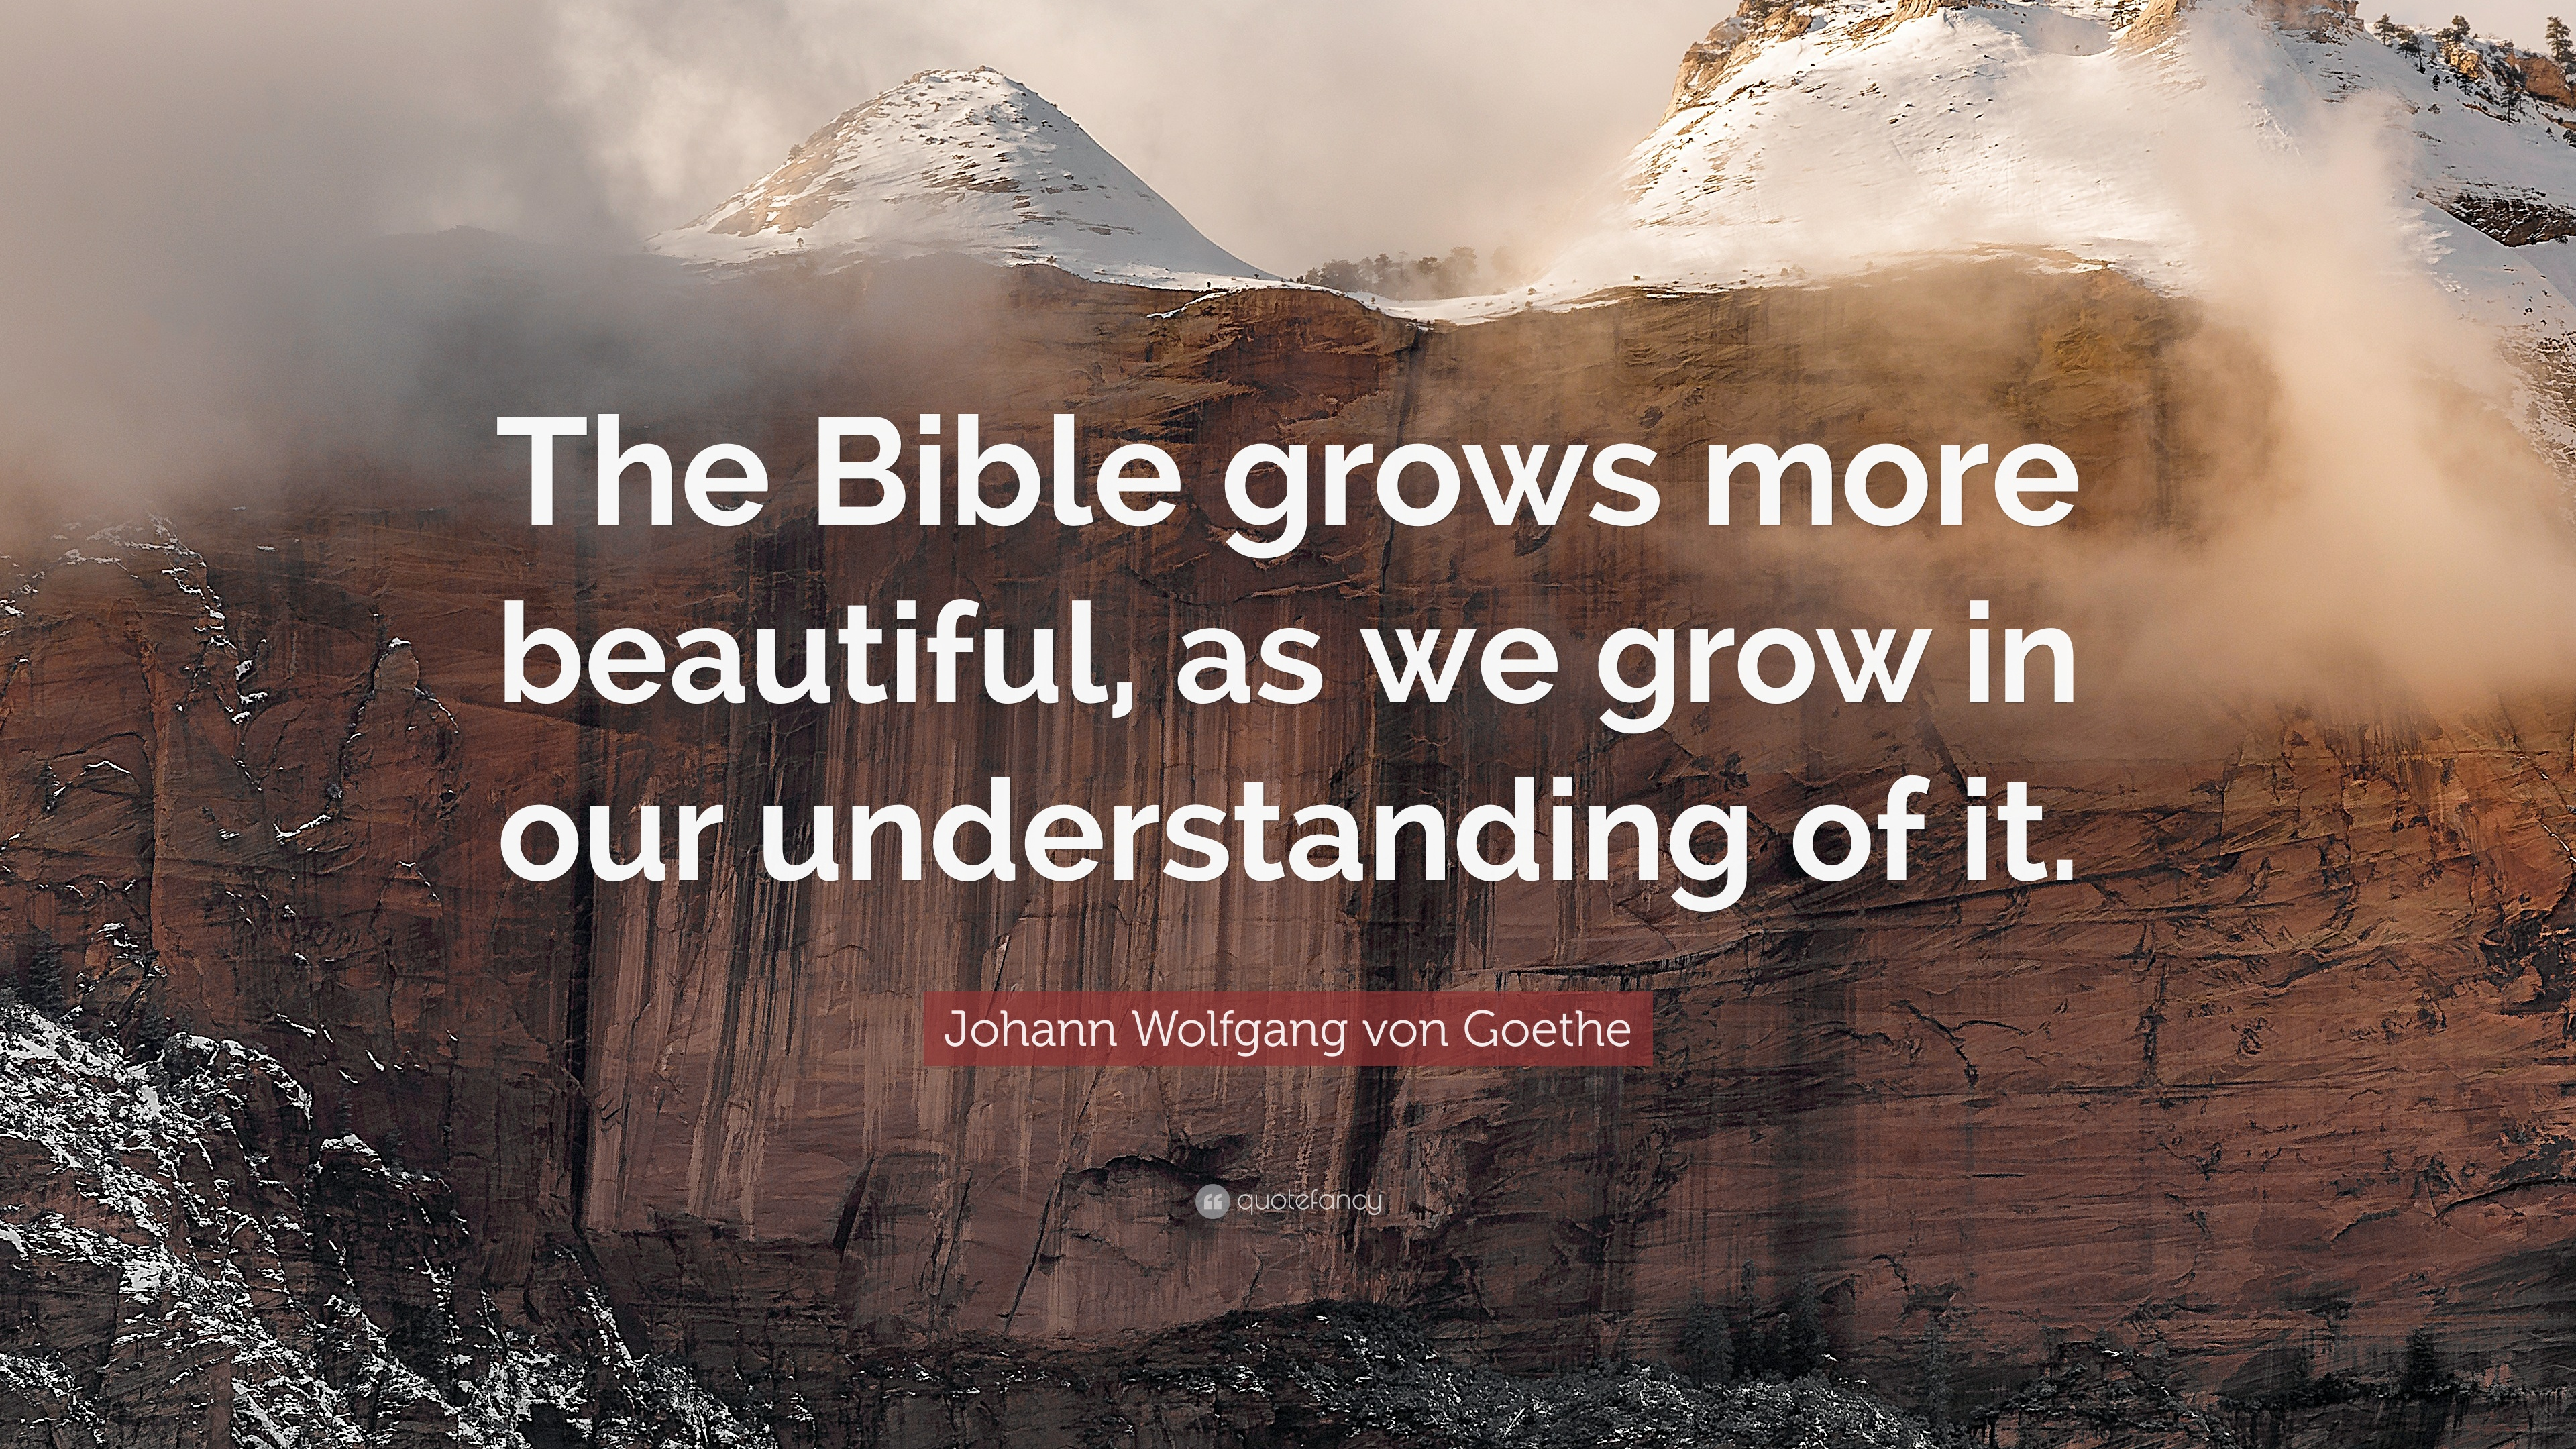 Goethe Quotes | Johann Wolfgang Von Goethe Quote The Bible Grows More Beautiful